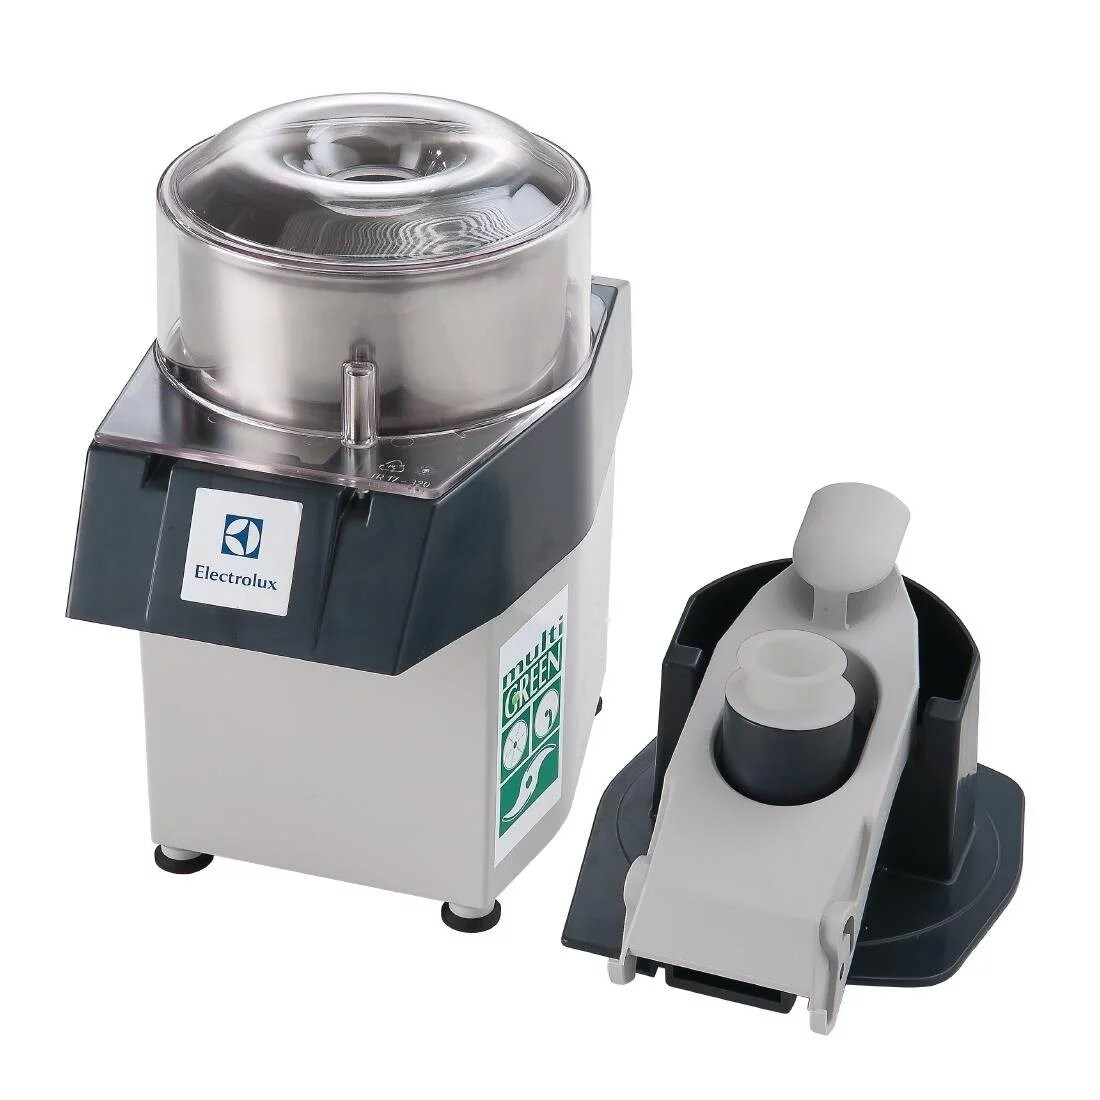 Electrolux MUGYXG Multi Green Veg Slicer & Food Processor - 603845